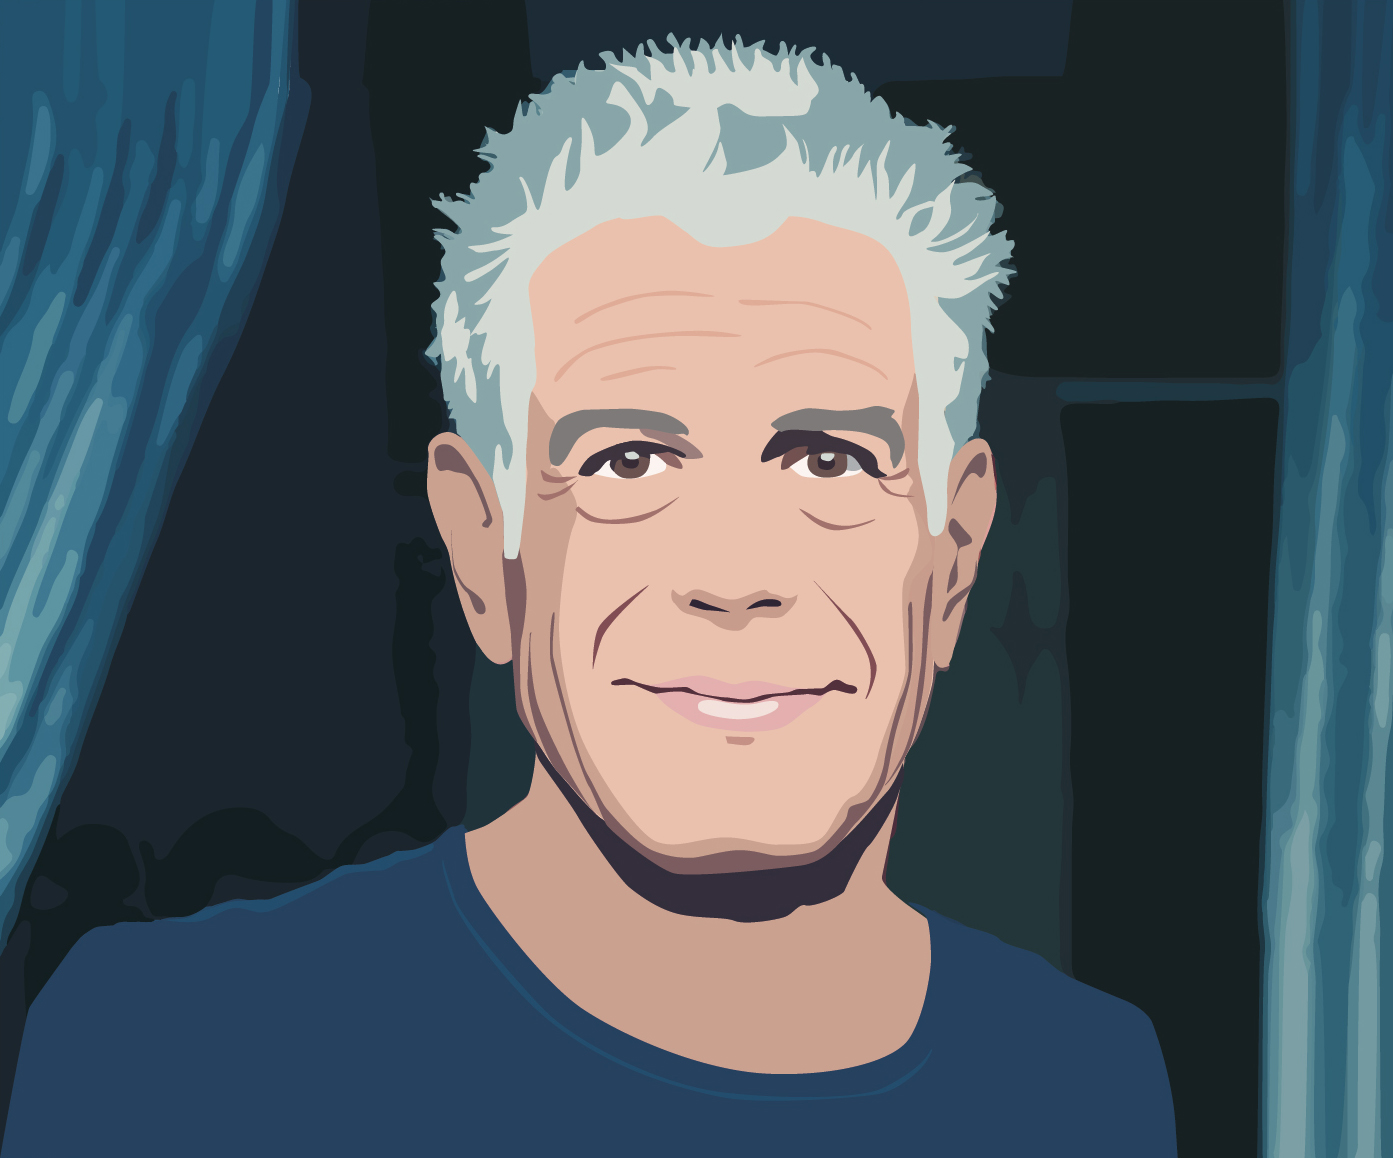 anthonyBourdainblue.jpg